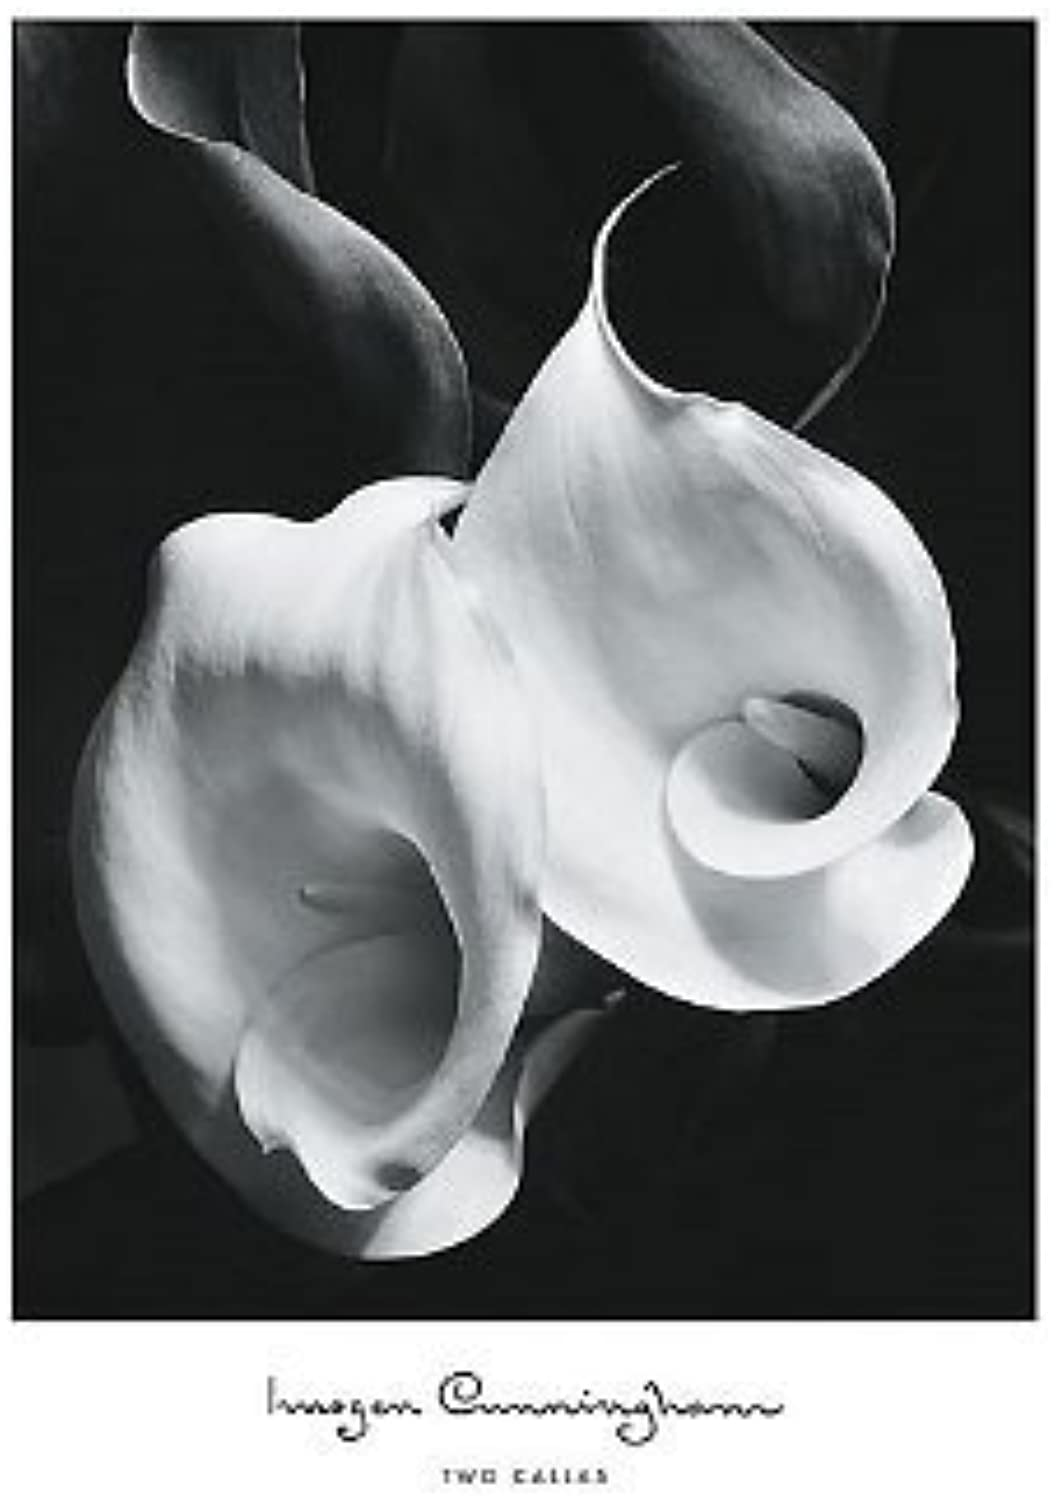 (16x20) Imogen Cunningham Two Callas Art Print Poster by Poster Revolution